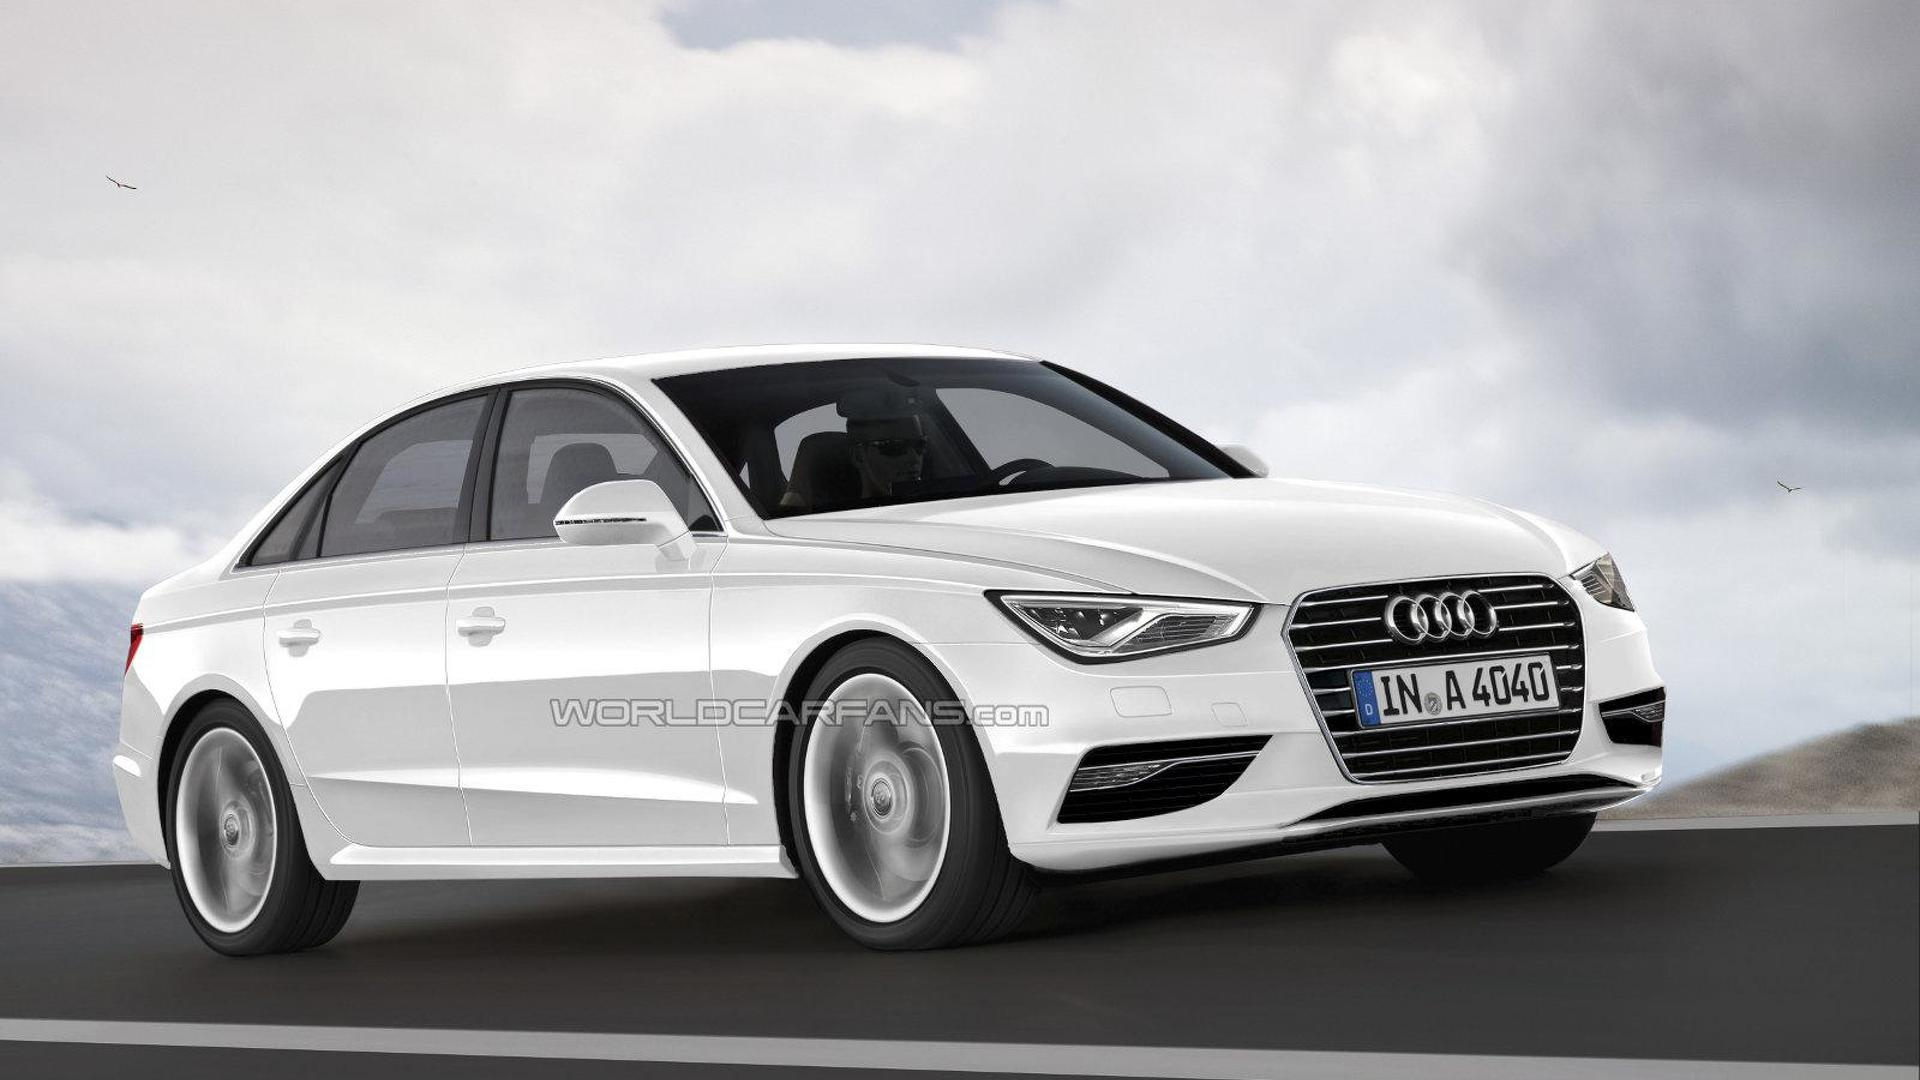 next gen audi a4 details emerge 2016 a4 vario to rival bmw 3 series gt report. Black Bedroom Furniture Sets. Home Design Ideas